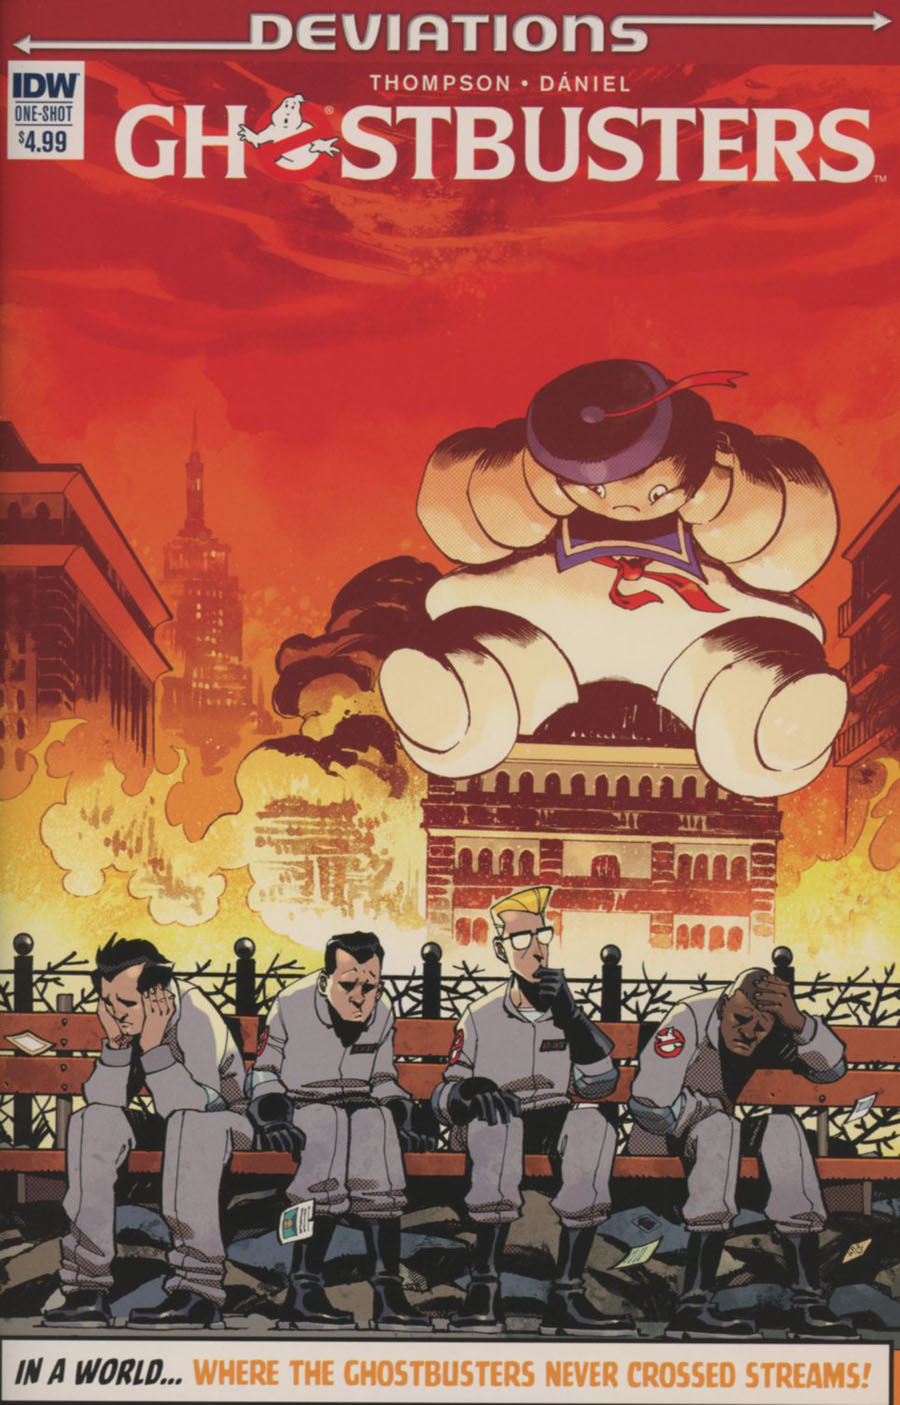 Ghostbusters Deviations One Shot Cover A Regular Nelson Daniel Cover